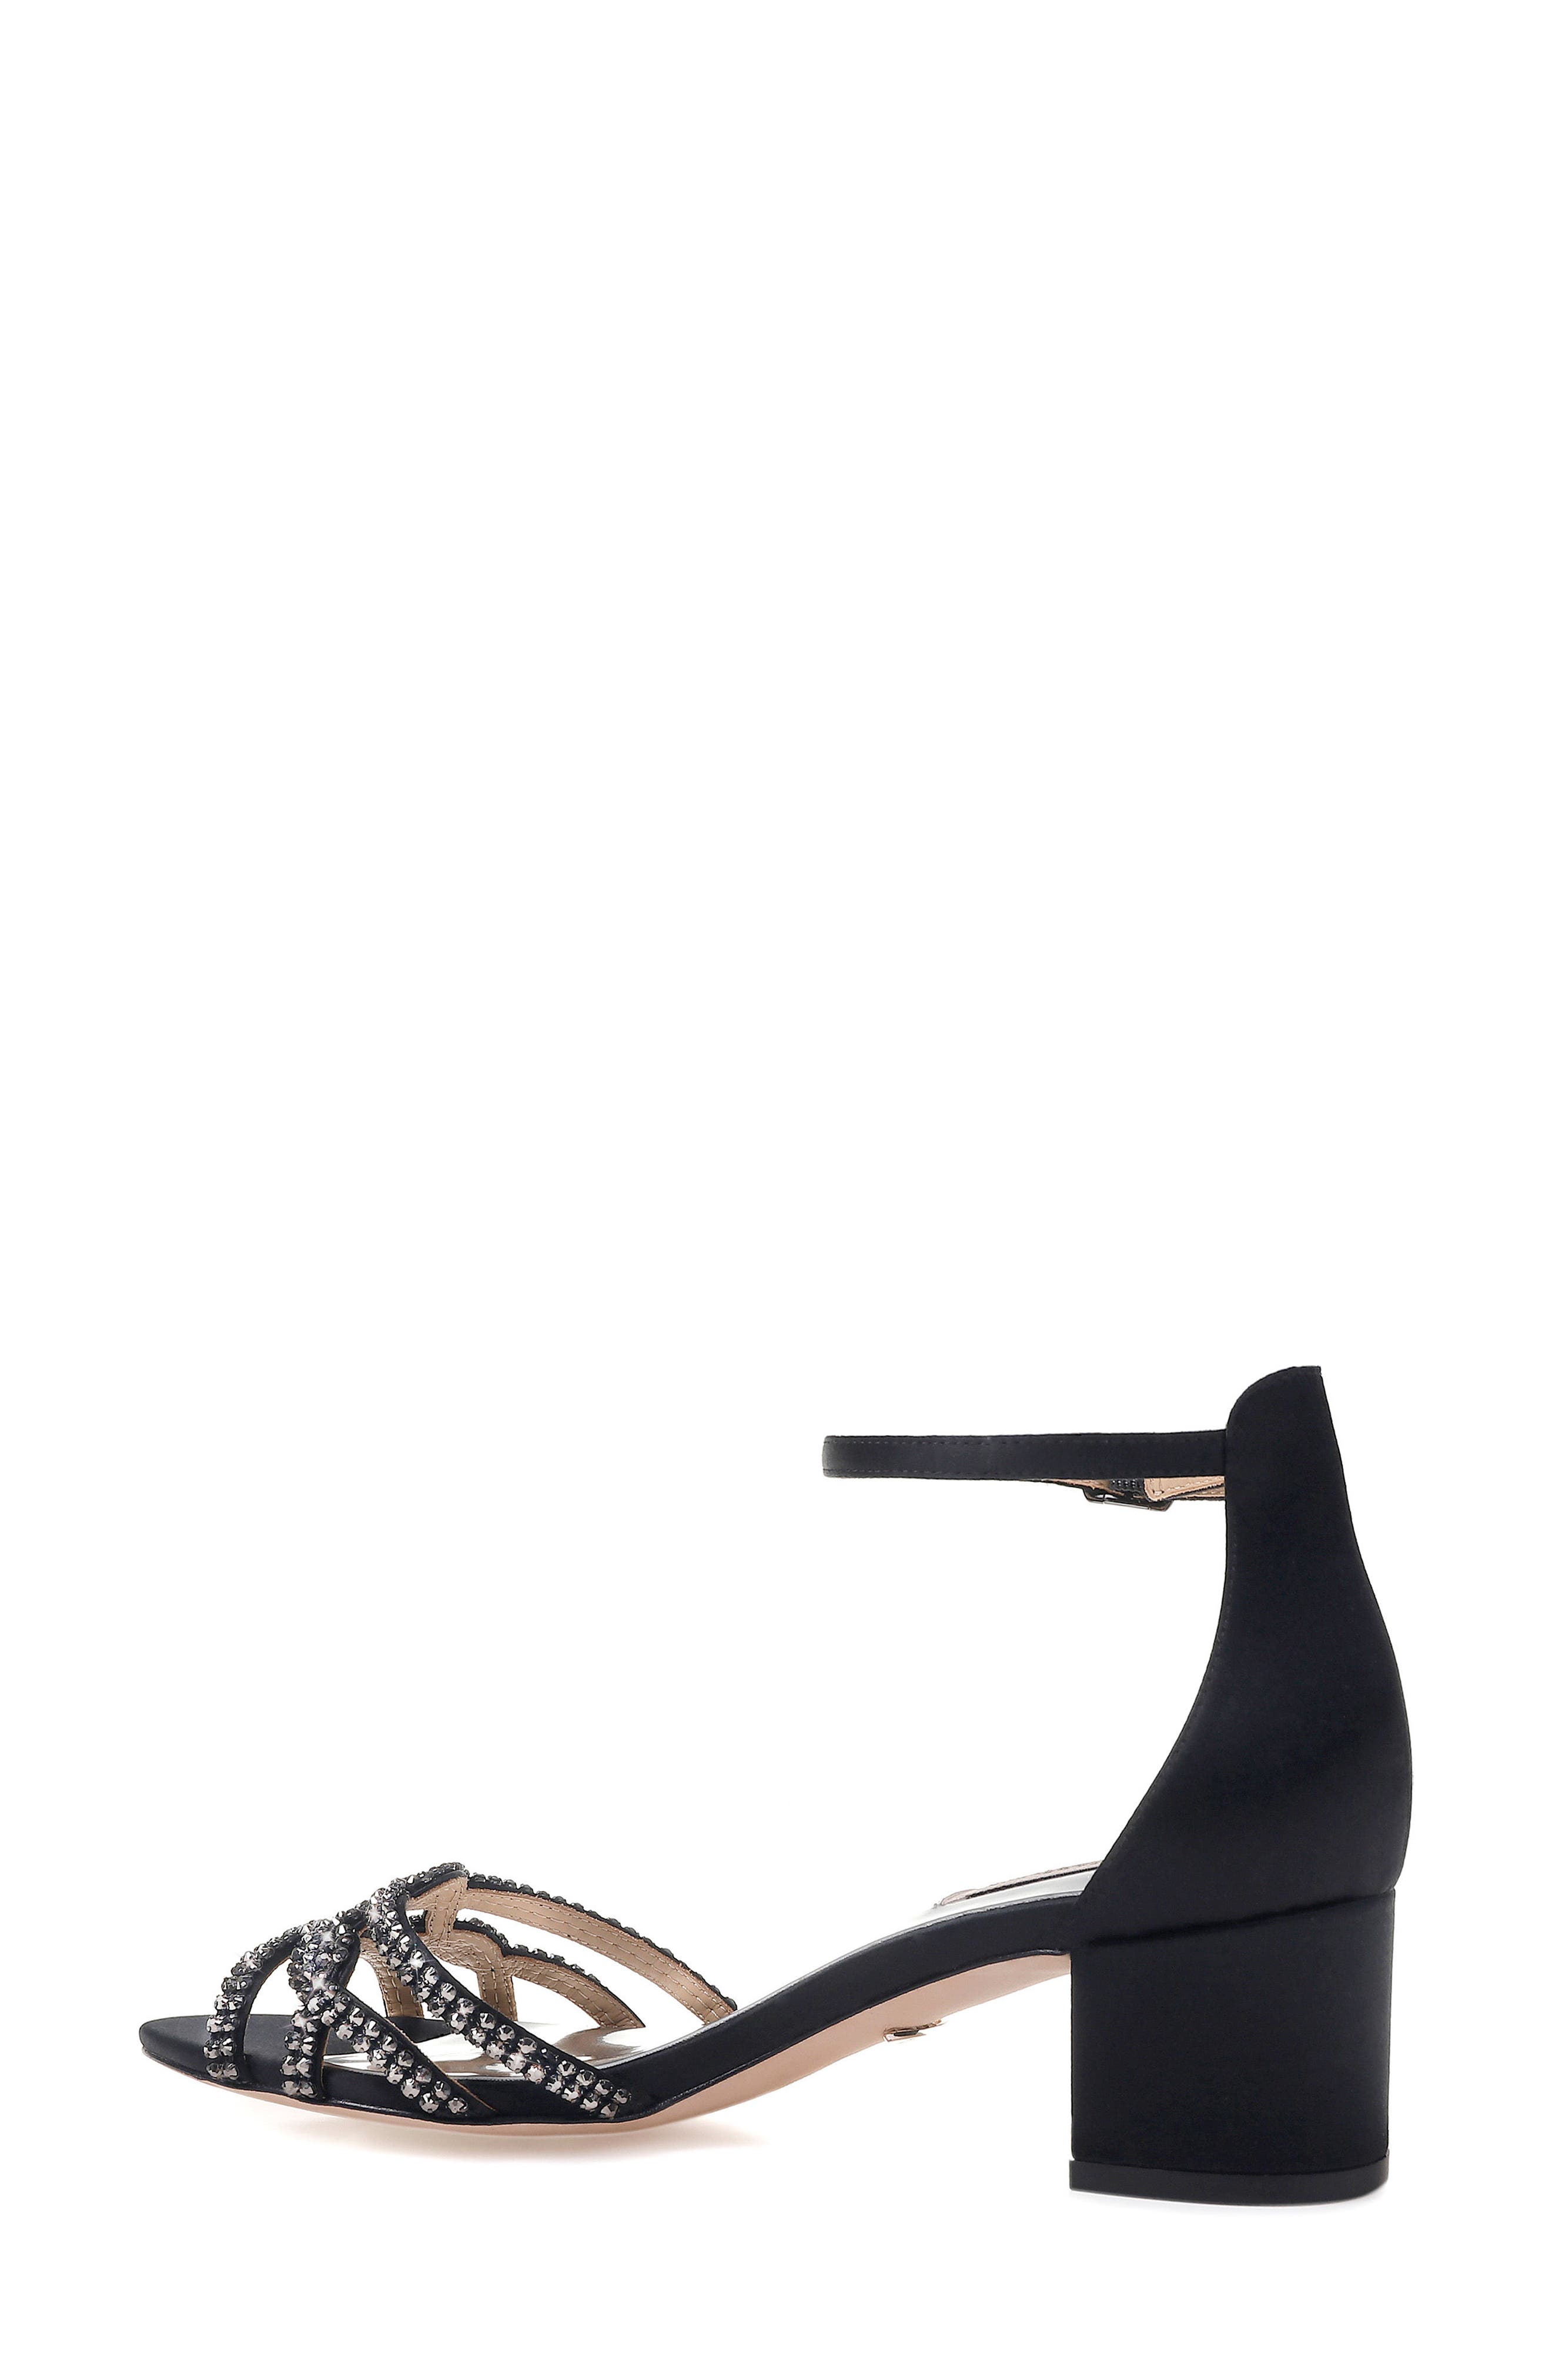 Badgley Mischka Sonya Block Heel Sandal,                             Alternate thumbnail 2, color,                             015